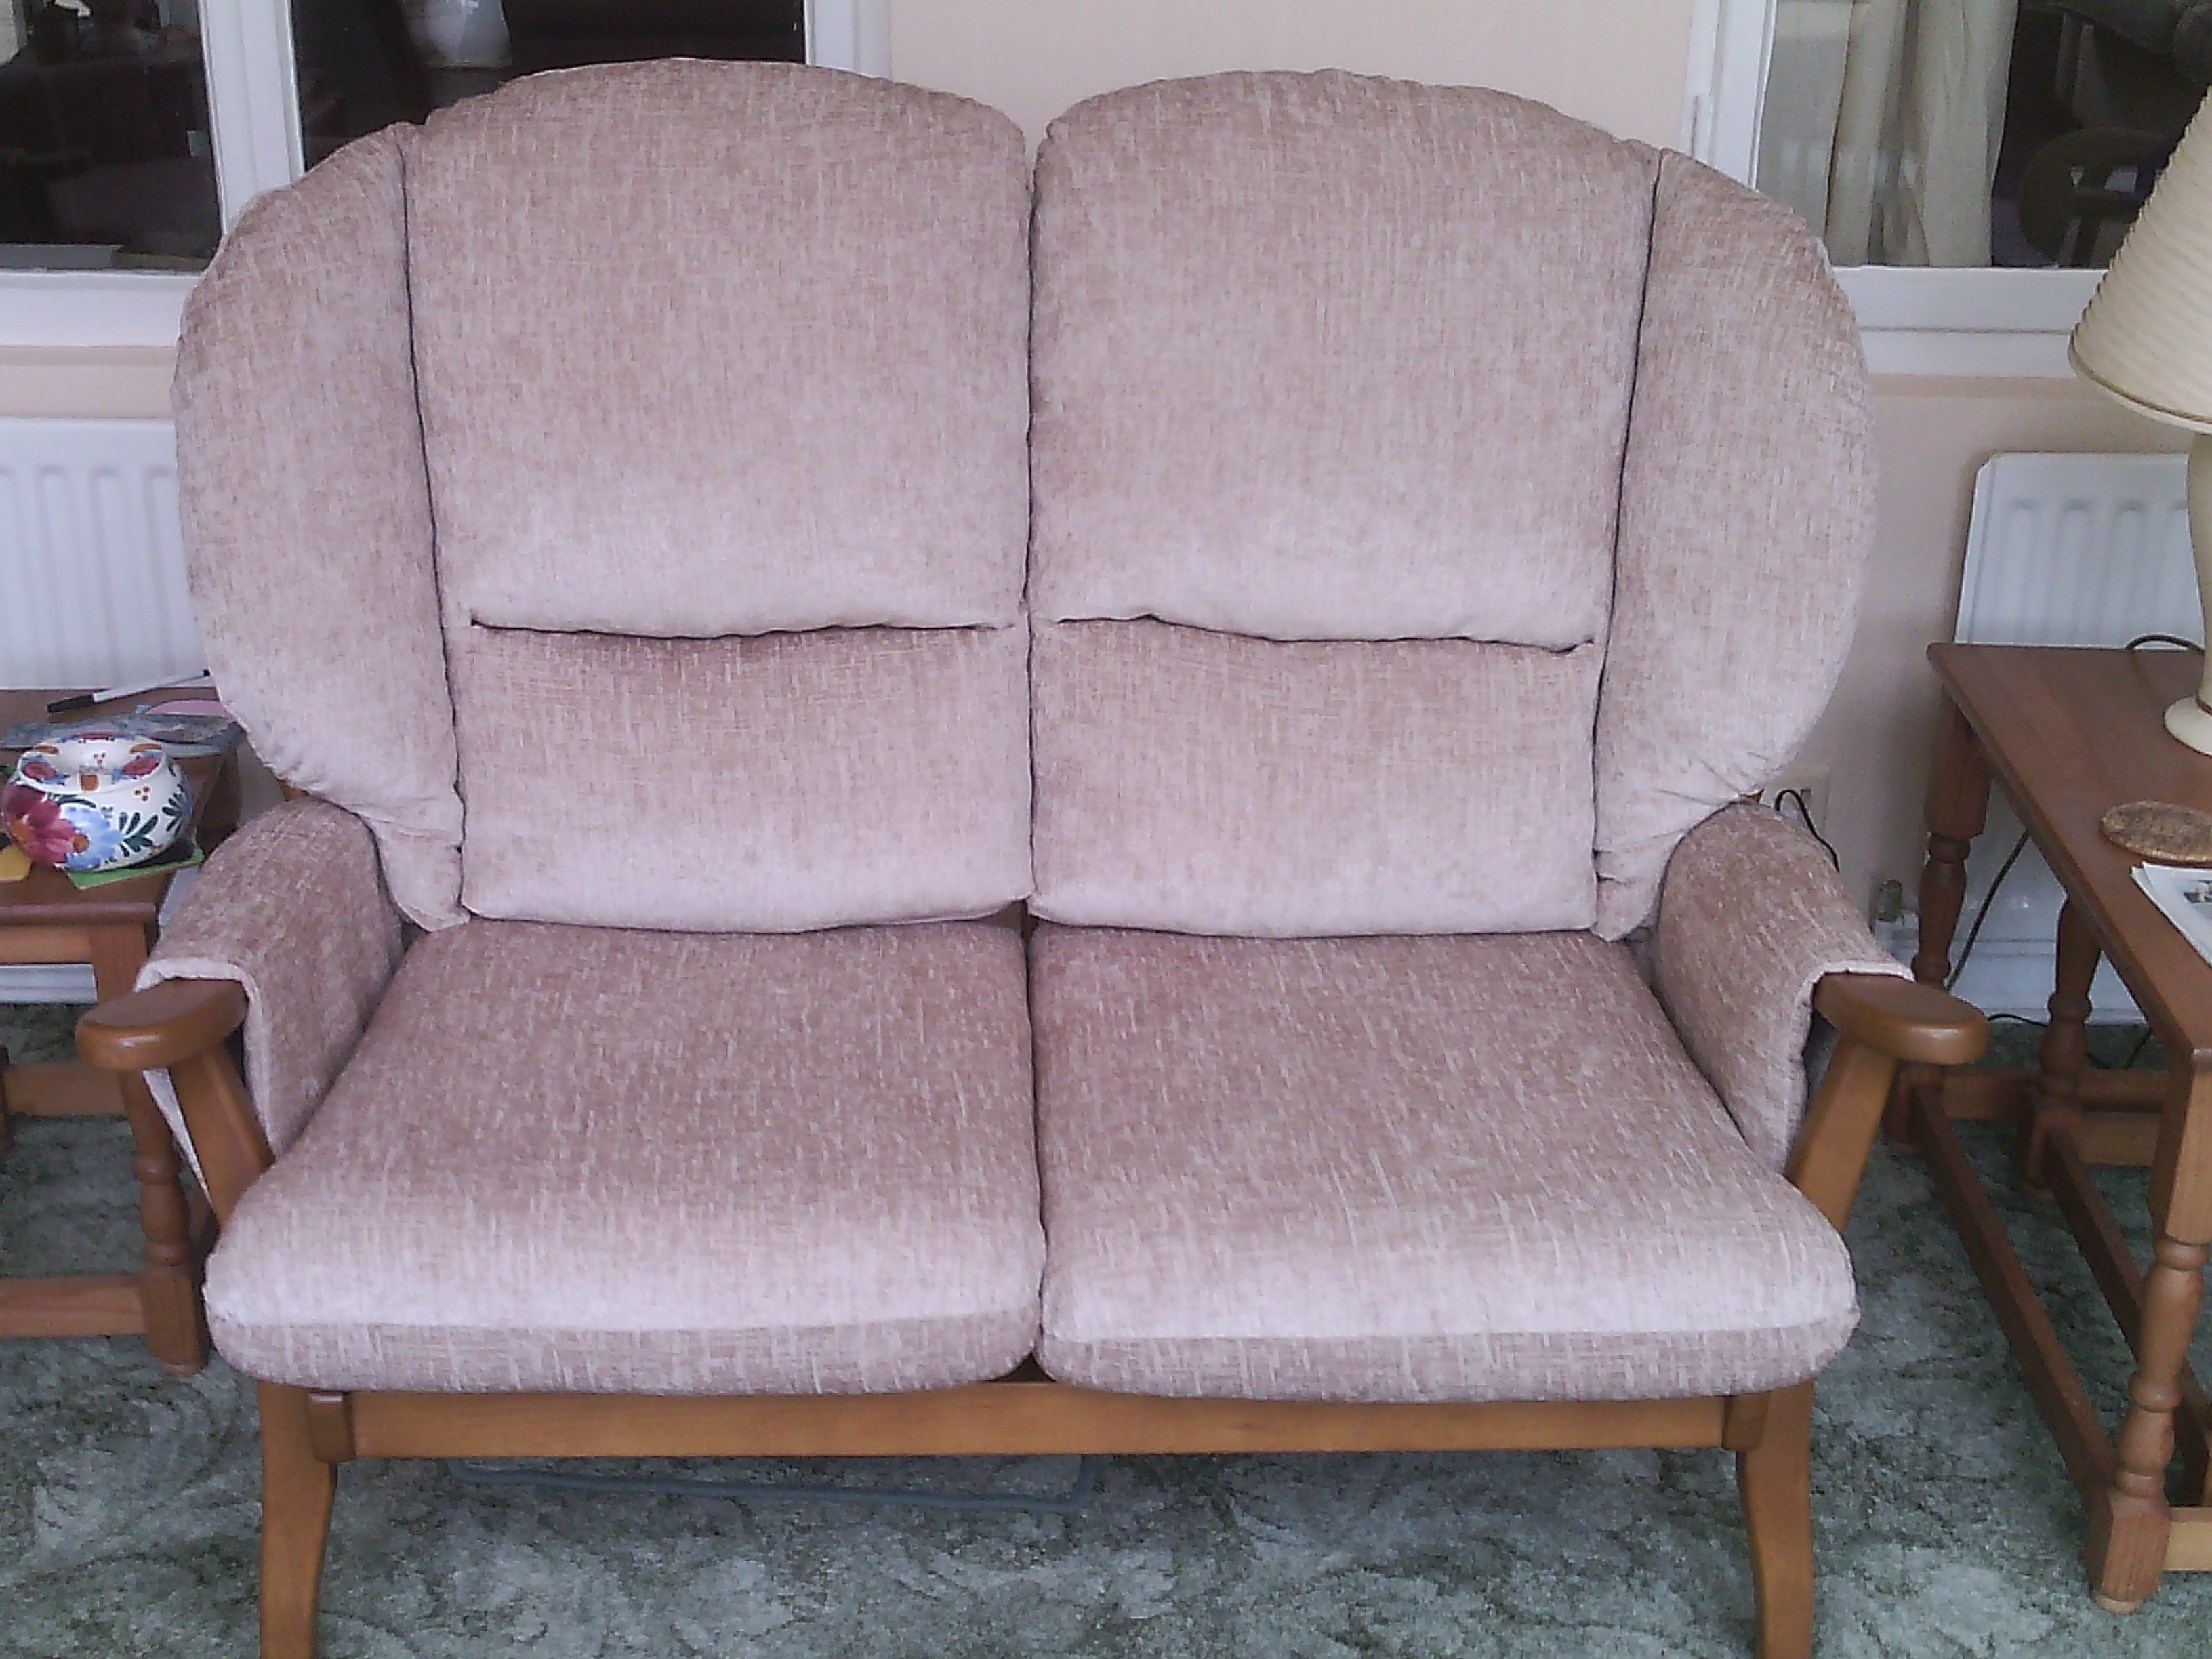 After I re-upholstered settee